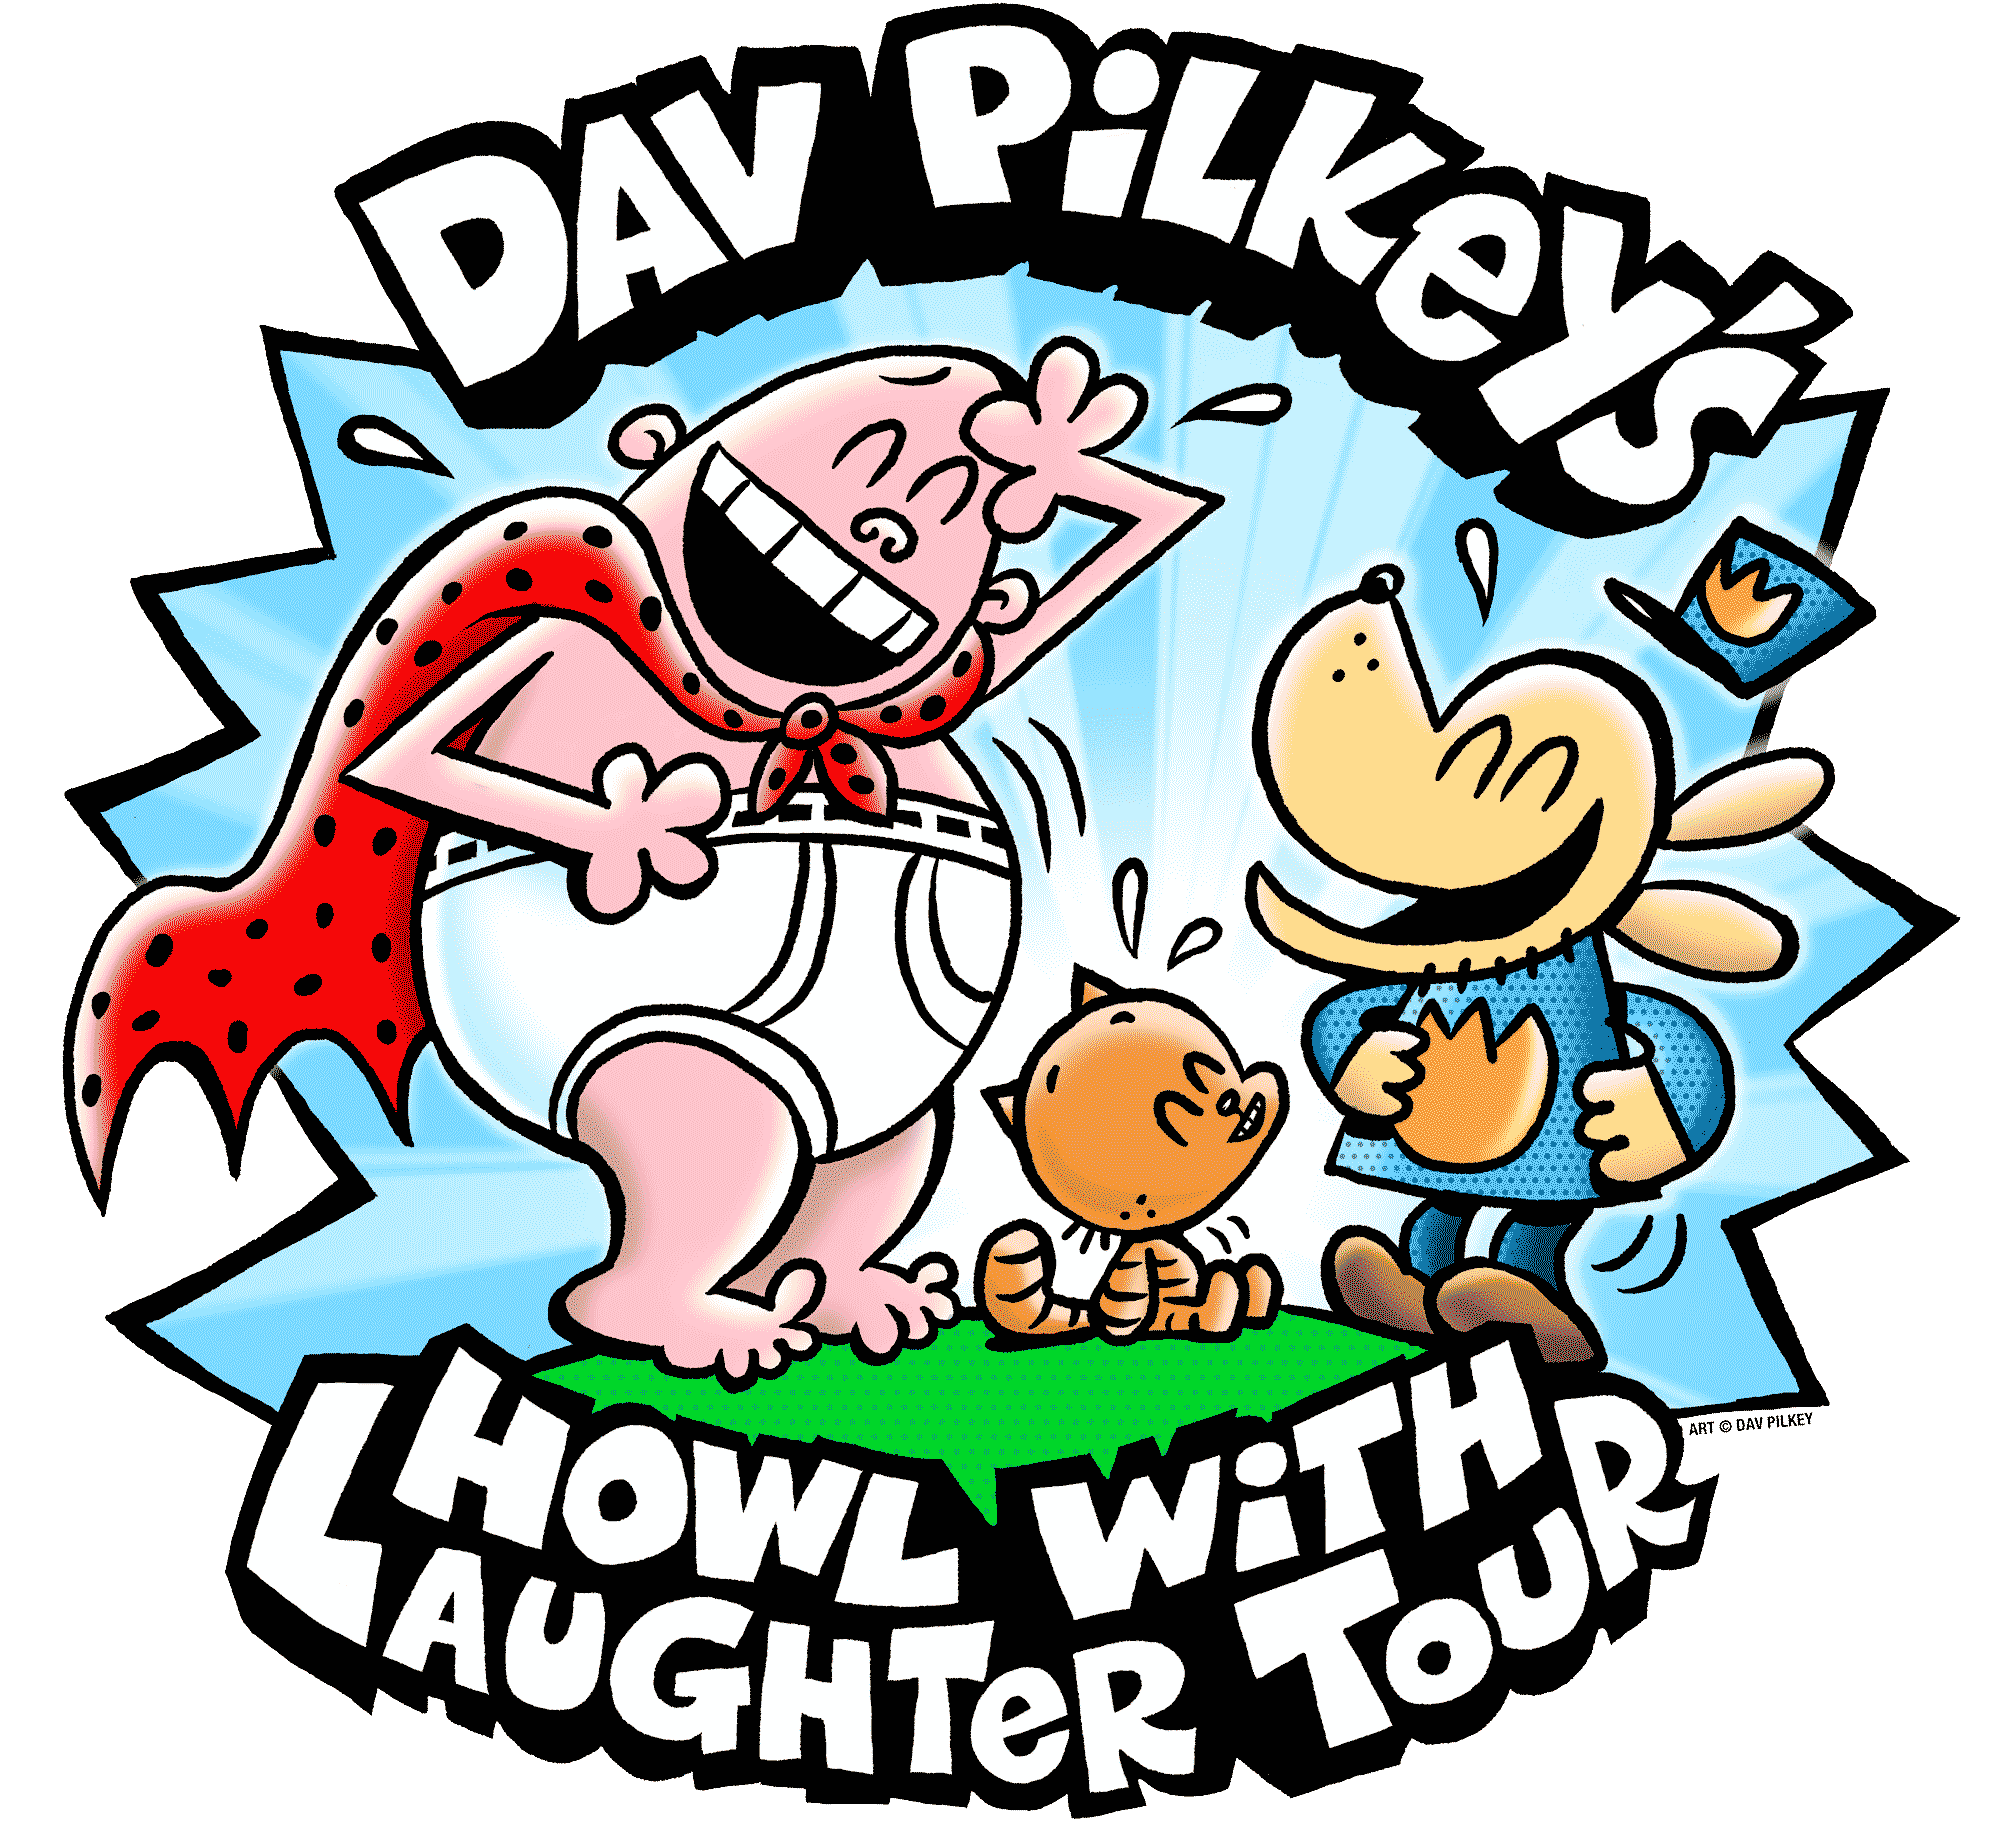 Book signing events clipart picture transparent library Upcoming Events | Dav Pilkey picture transparent library